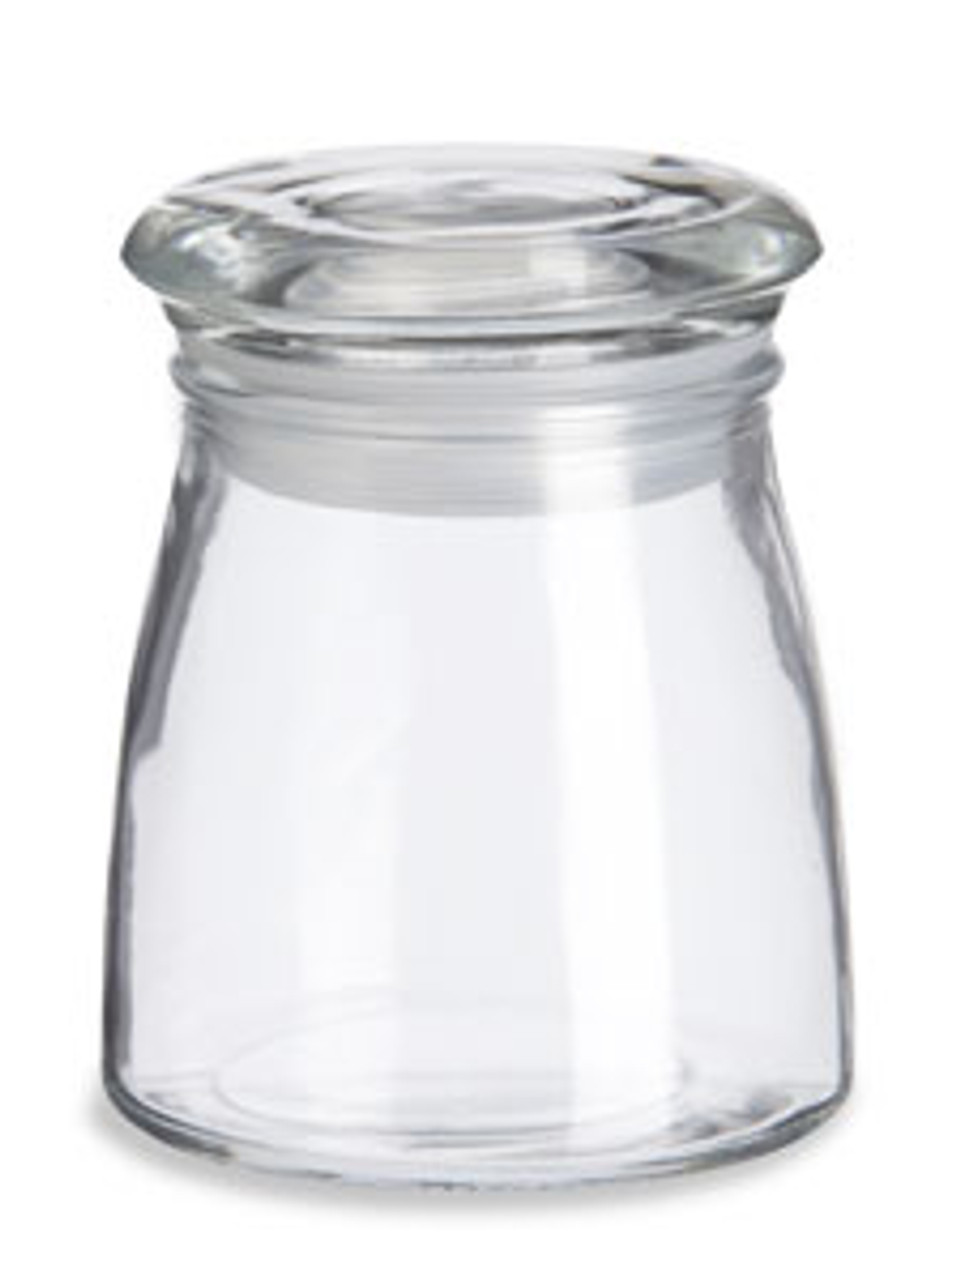 Tapered Glass Candle Jar With Lid 4oz Specialty Bottle